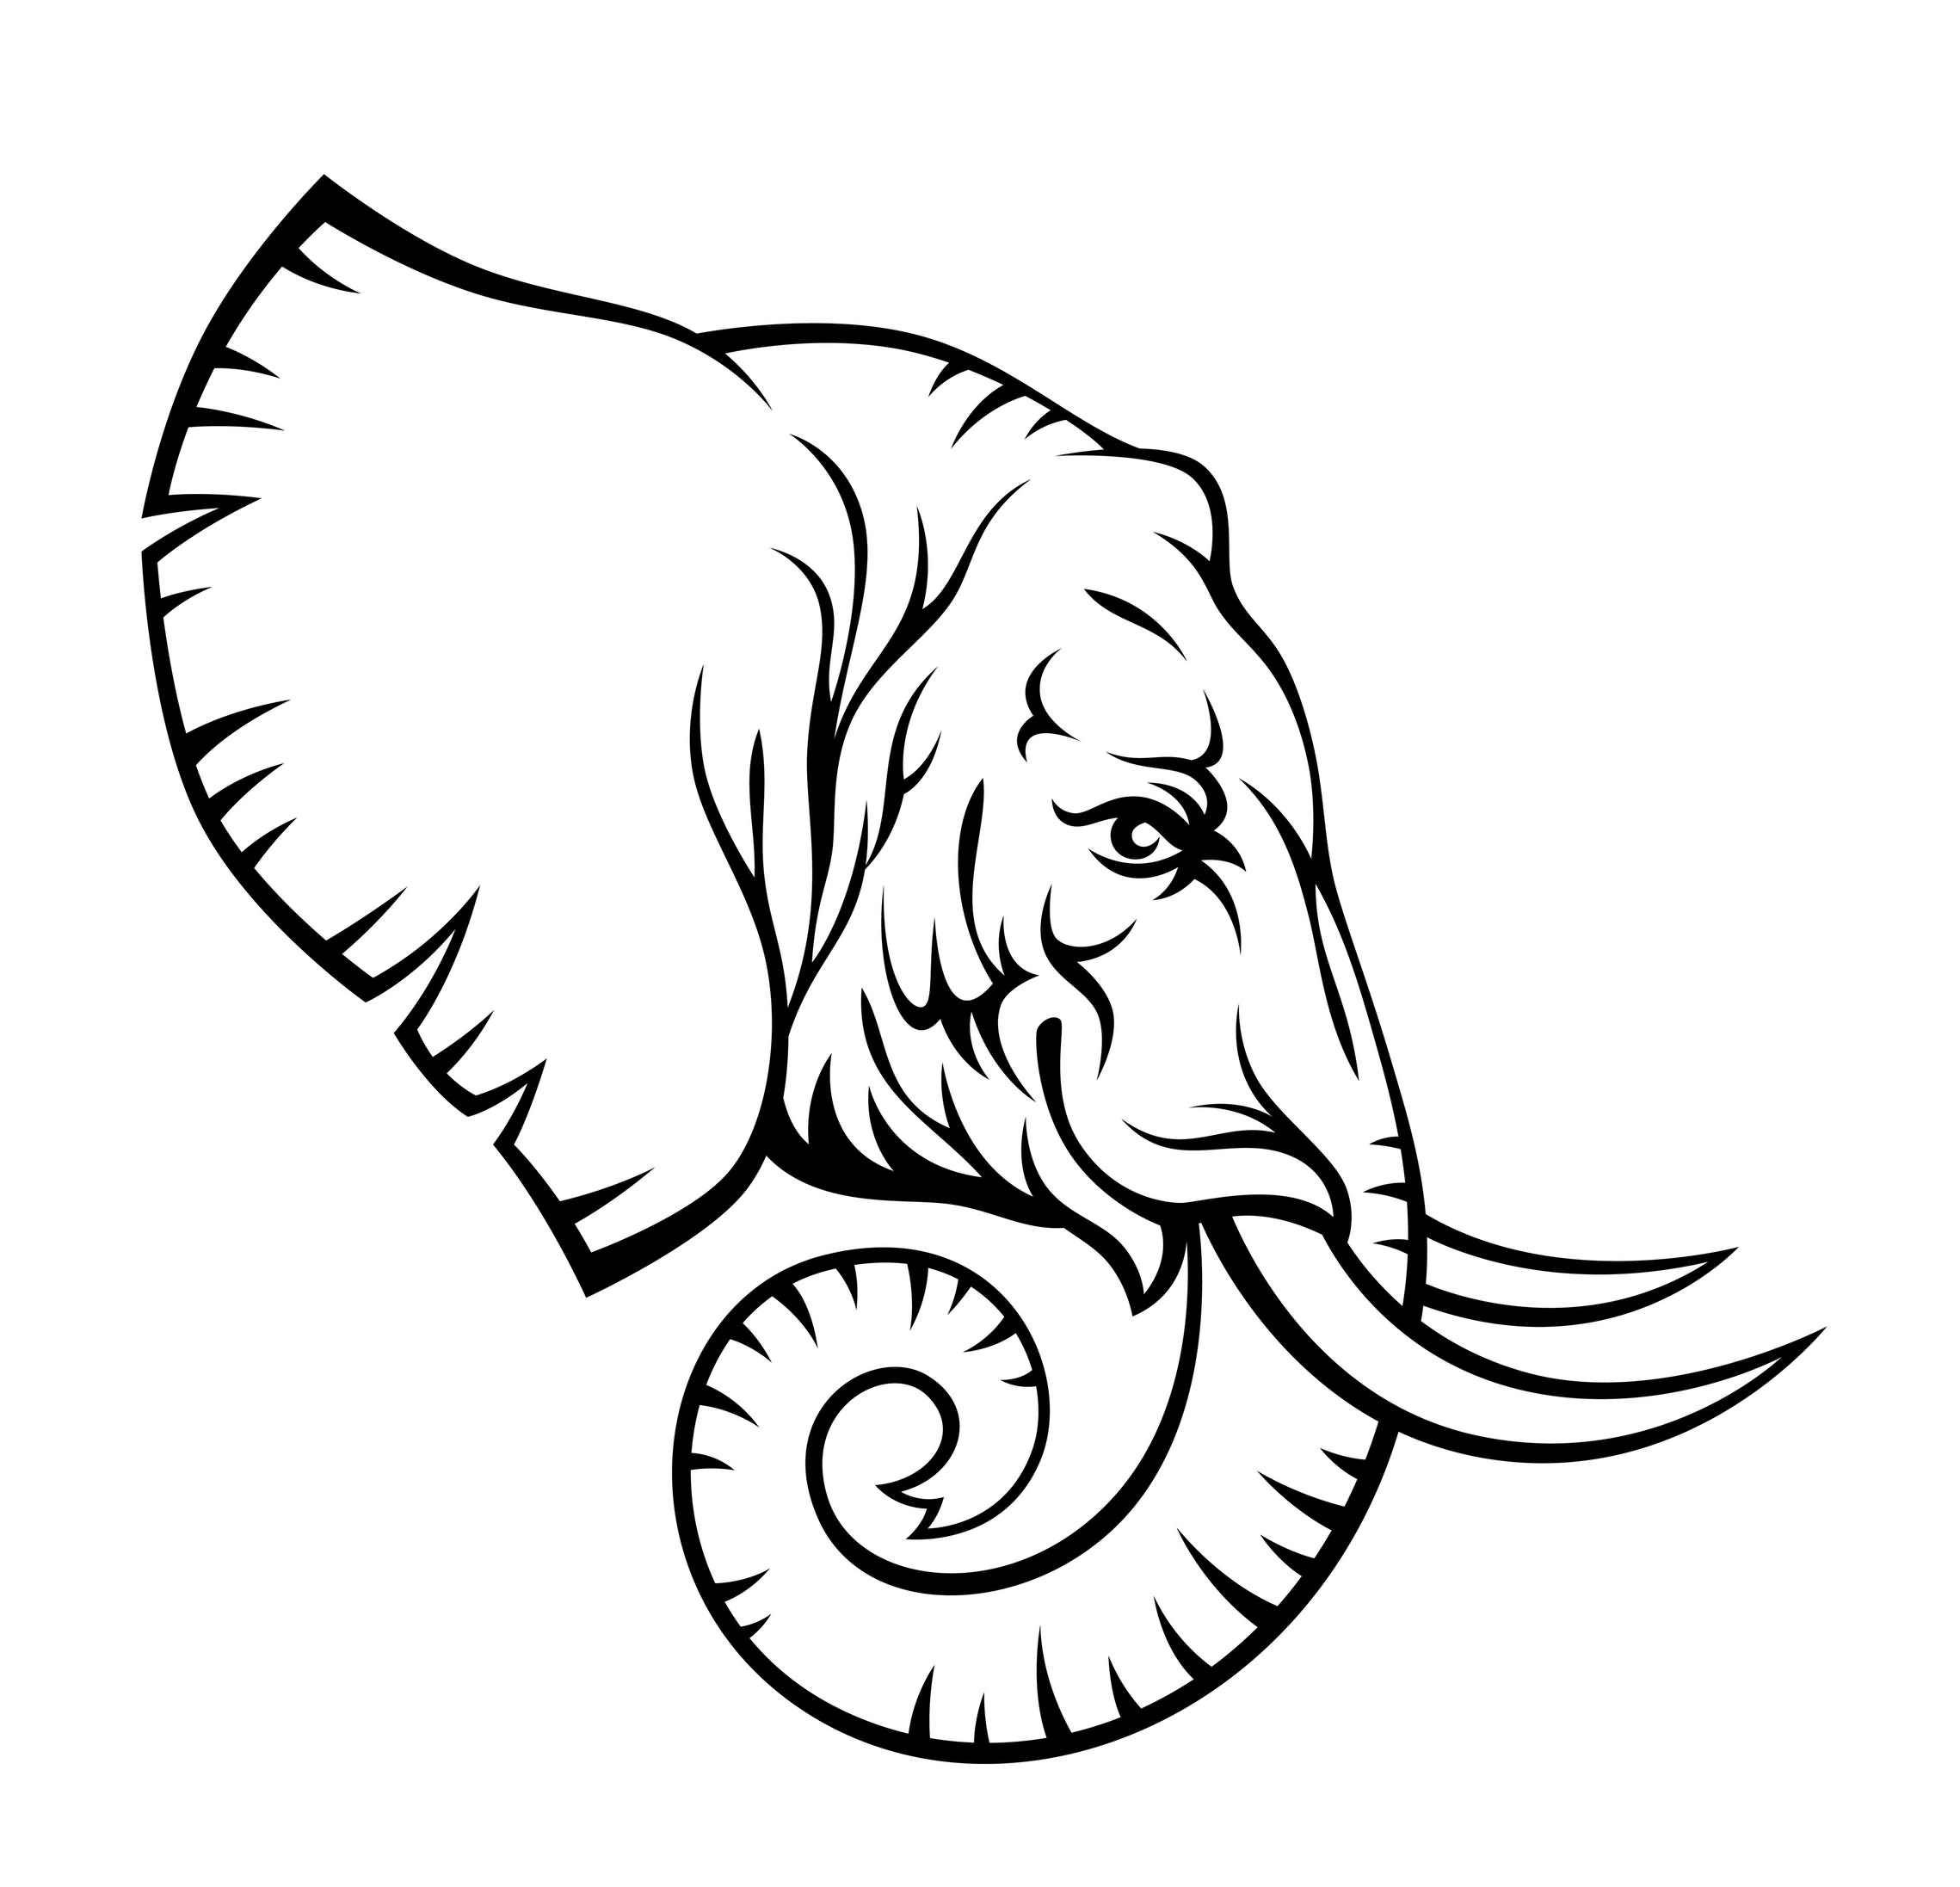 2278x2193 Rose Drawing Elephant For Free Download